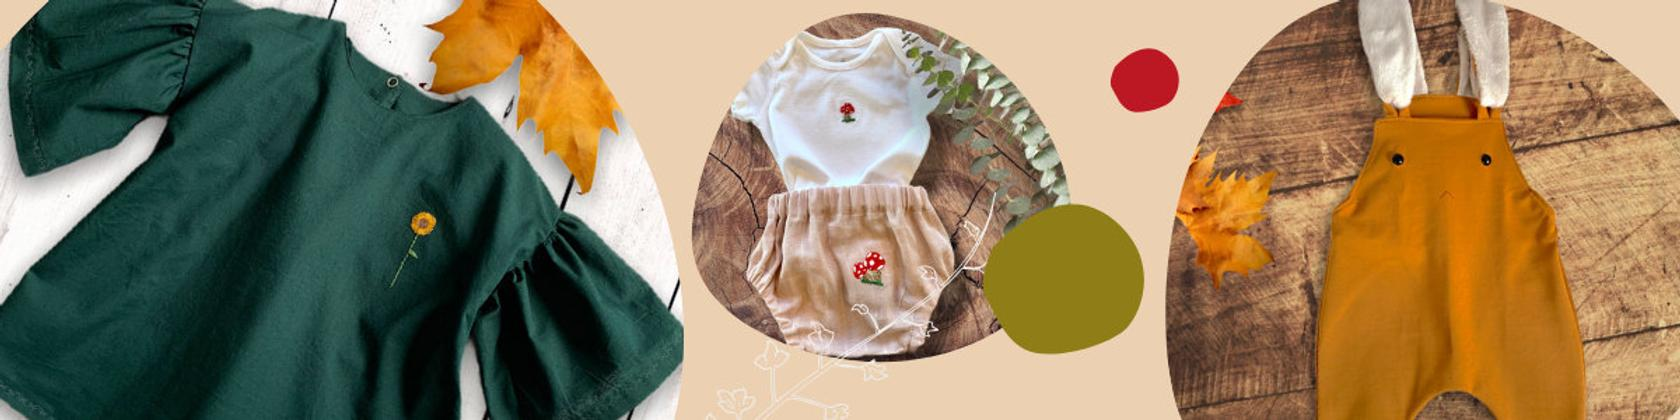 Love from natural fabrics for children's clothing pieces. @etsy.com.